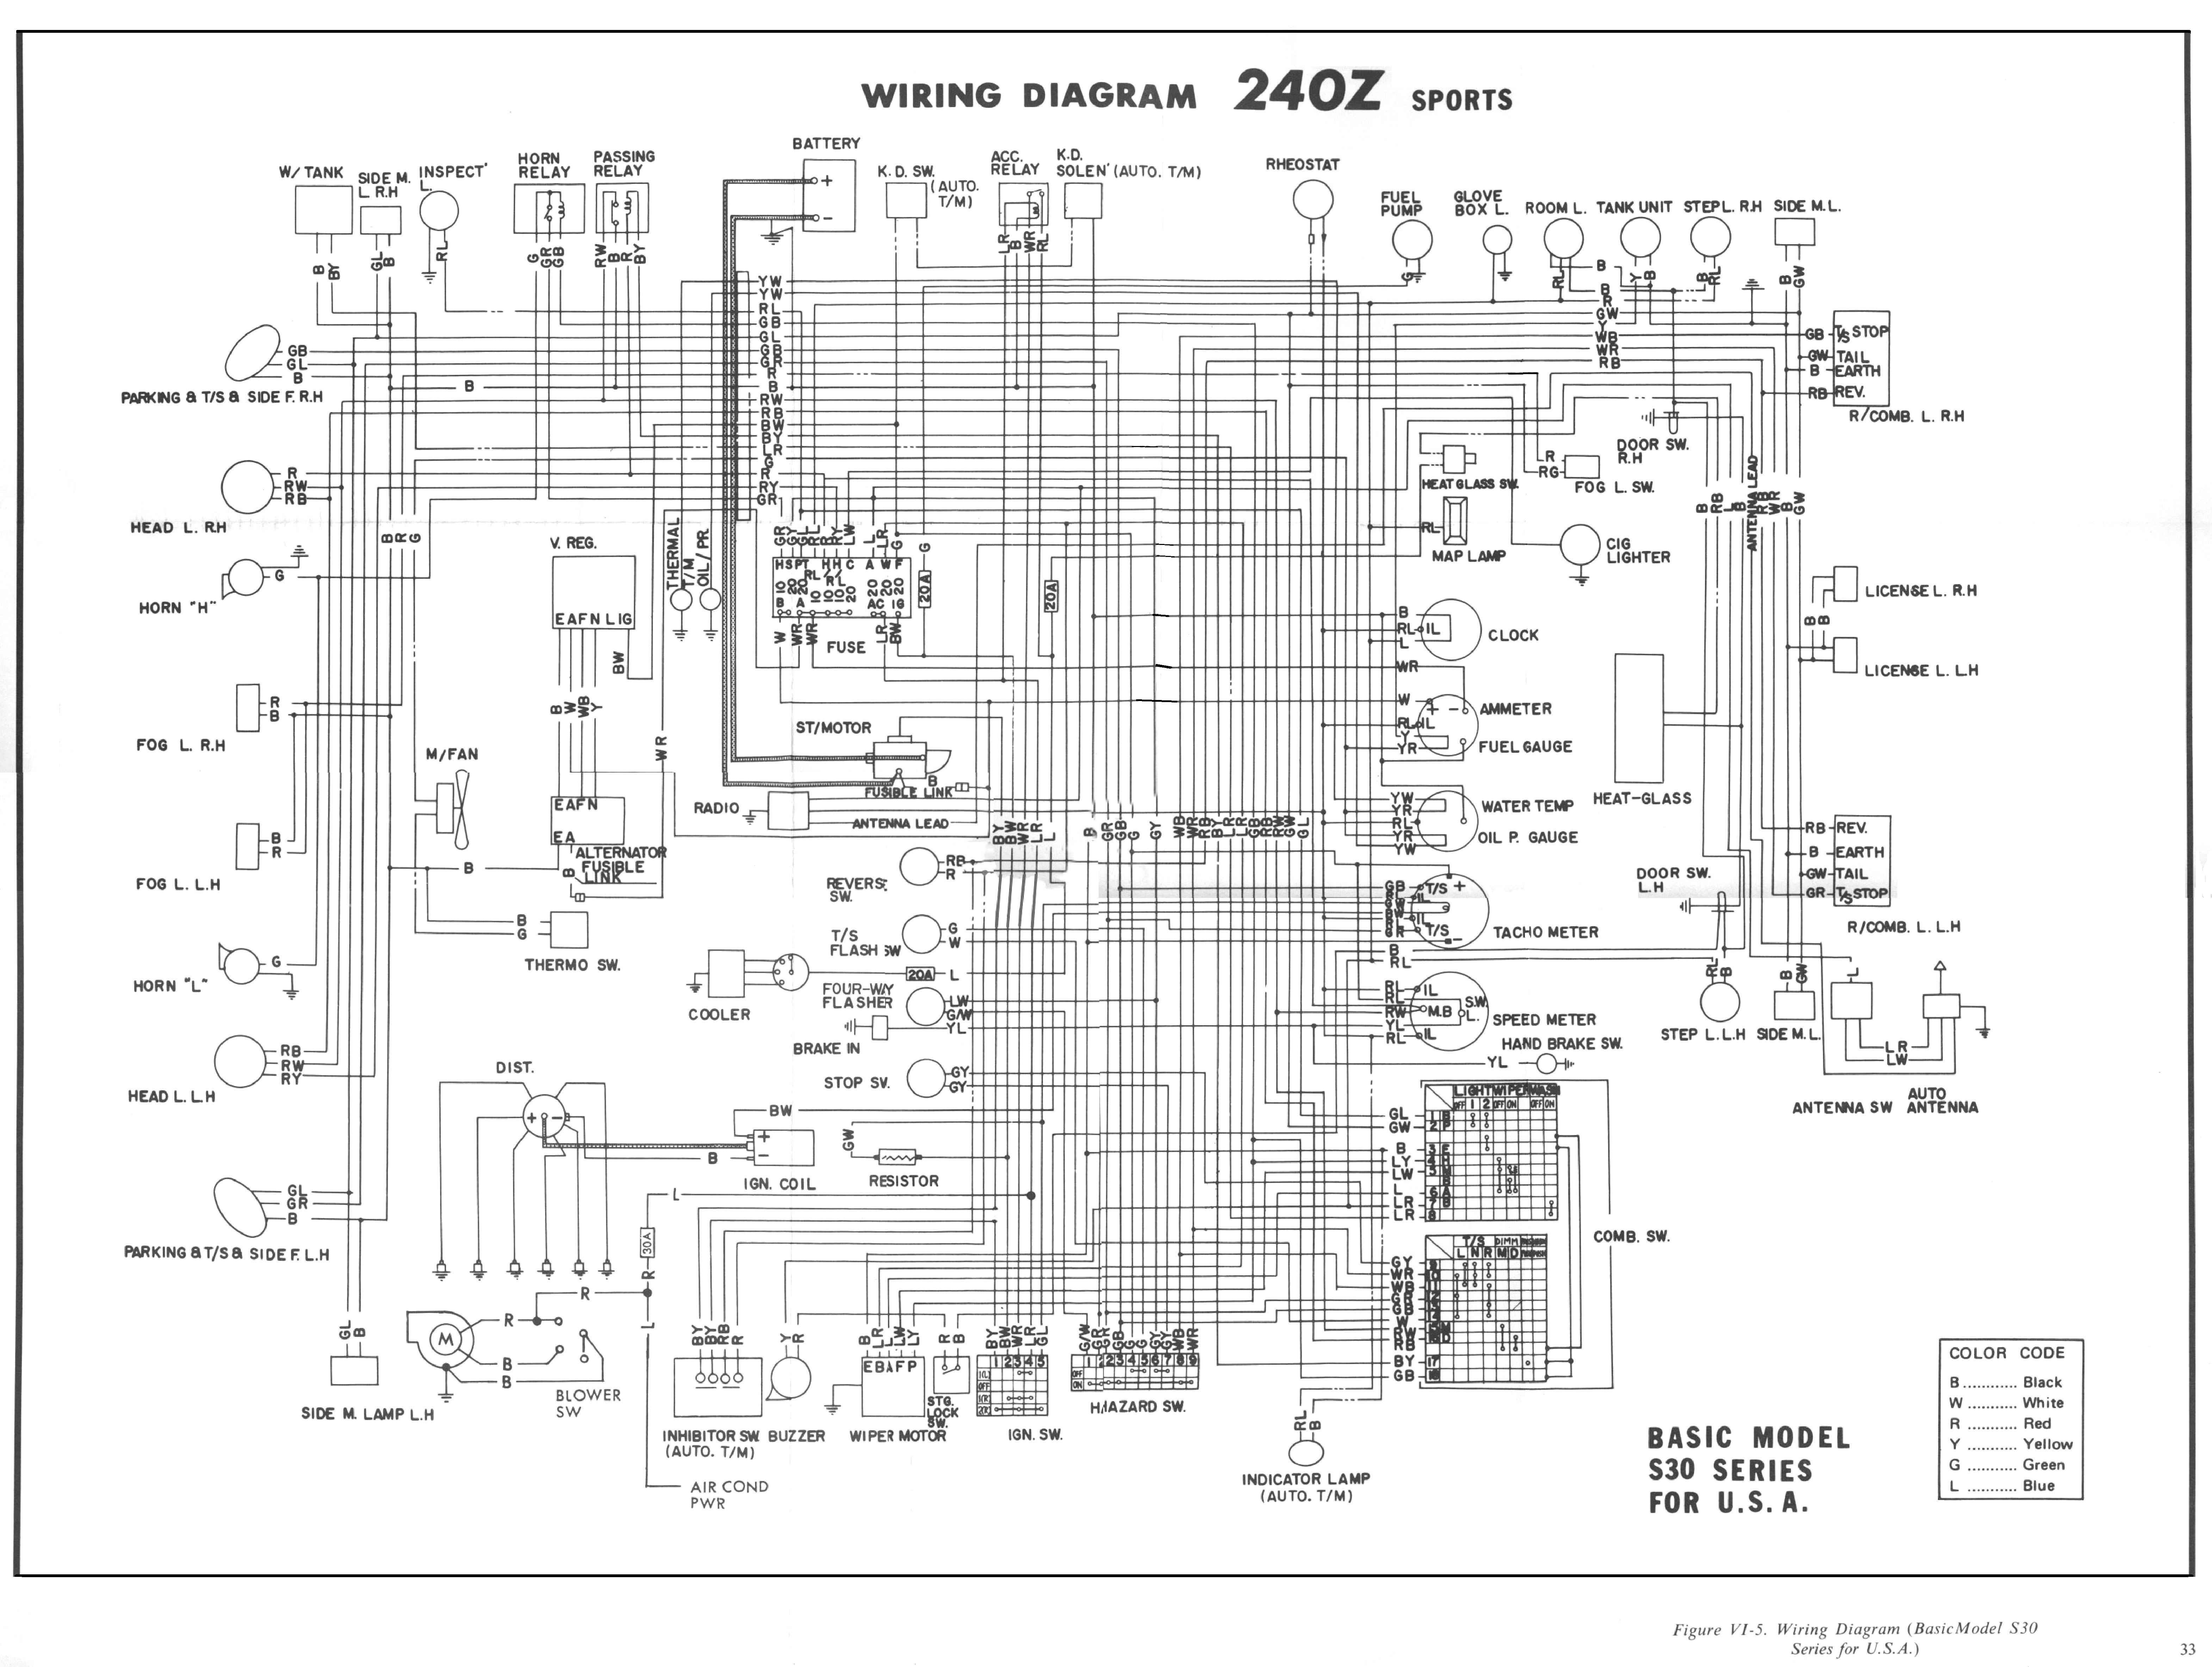 240z wiring diagram wiring diagram l3 1991 mazda miata wiring diagram 1974 datsun 260z wiring diagram #12